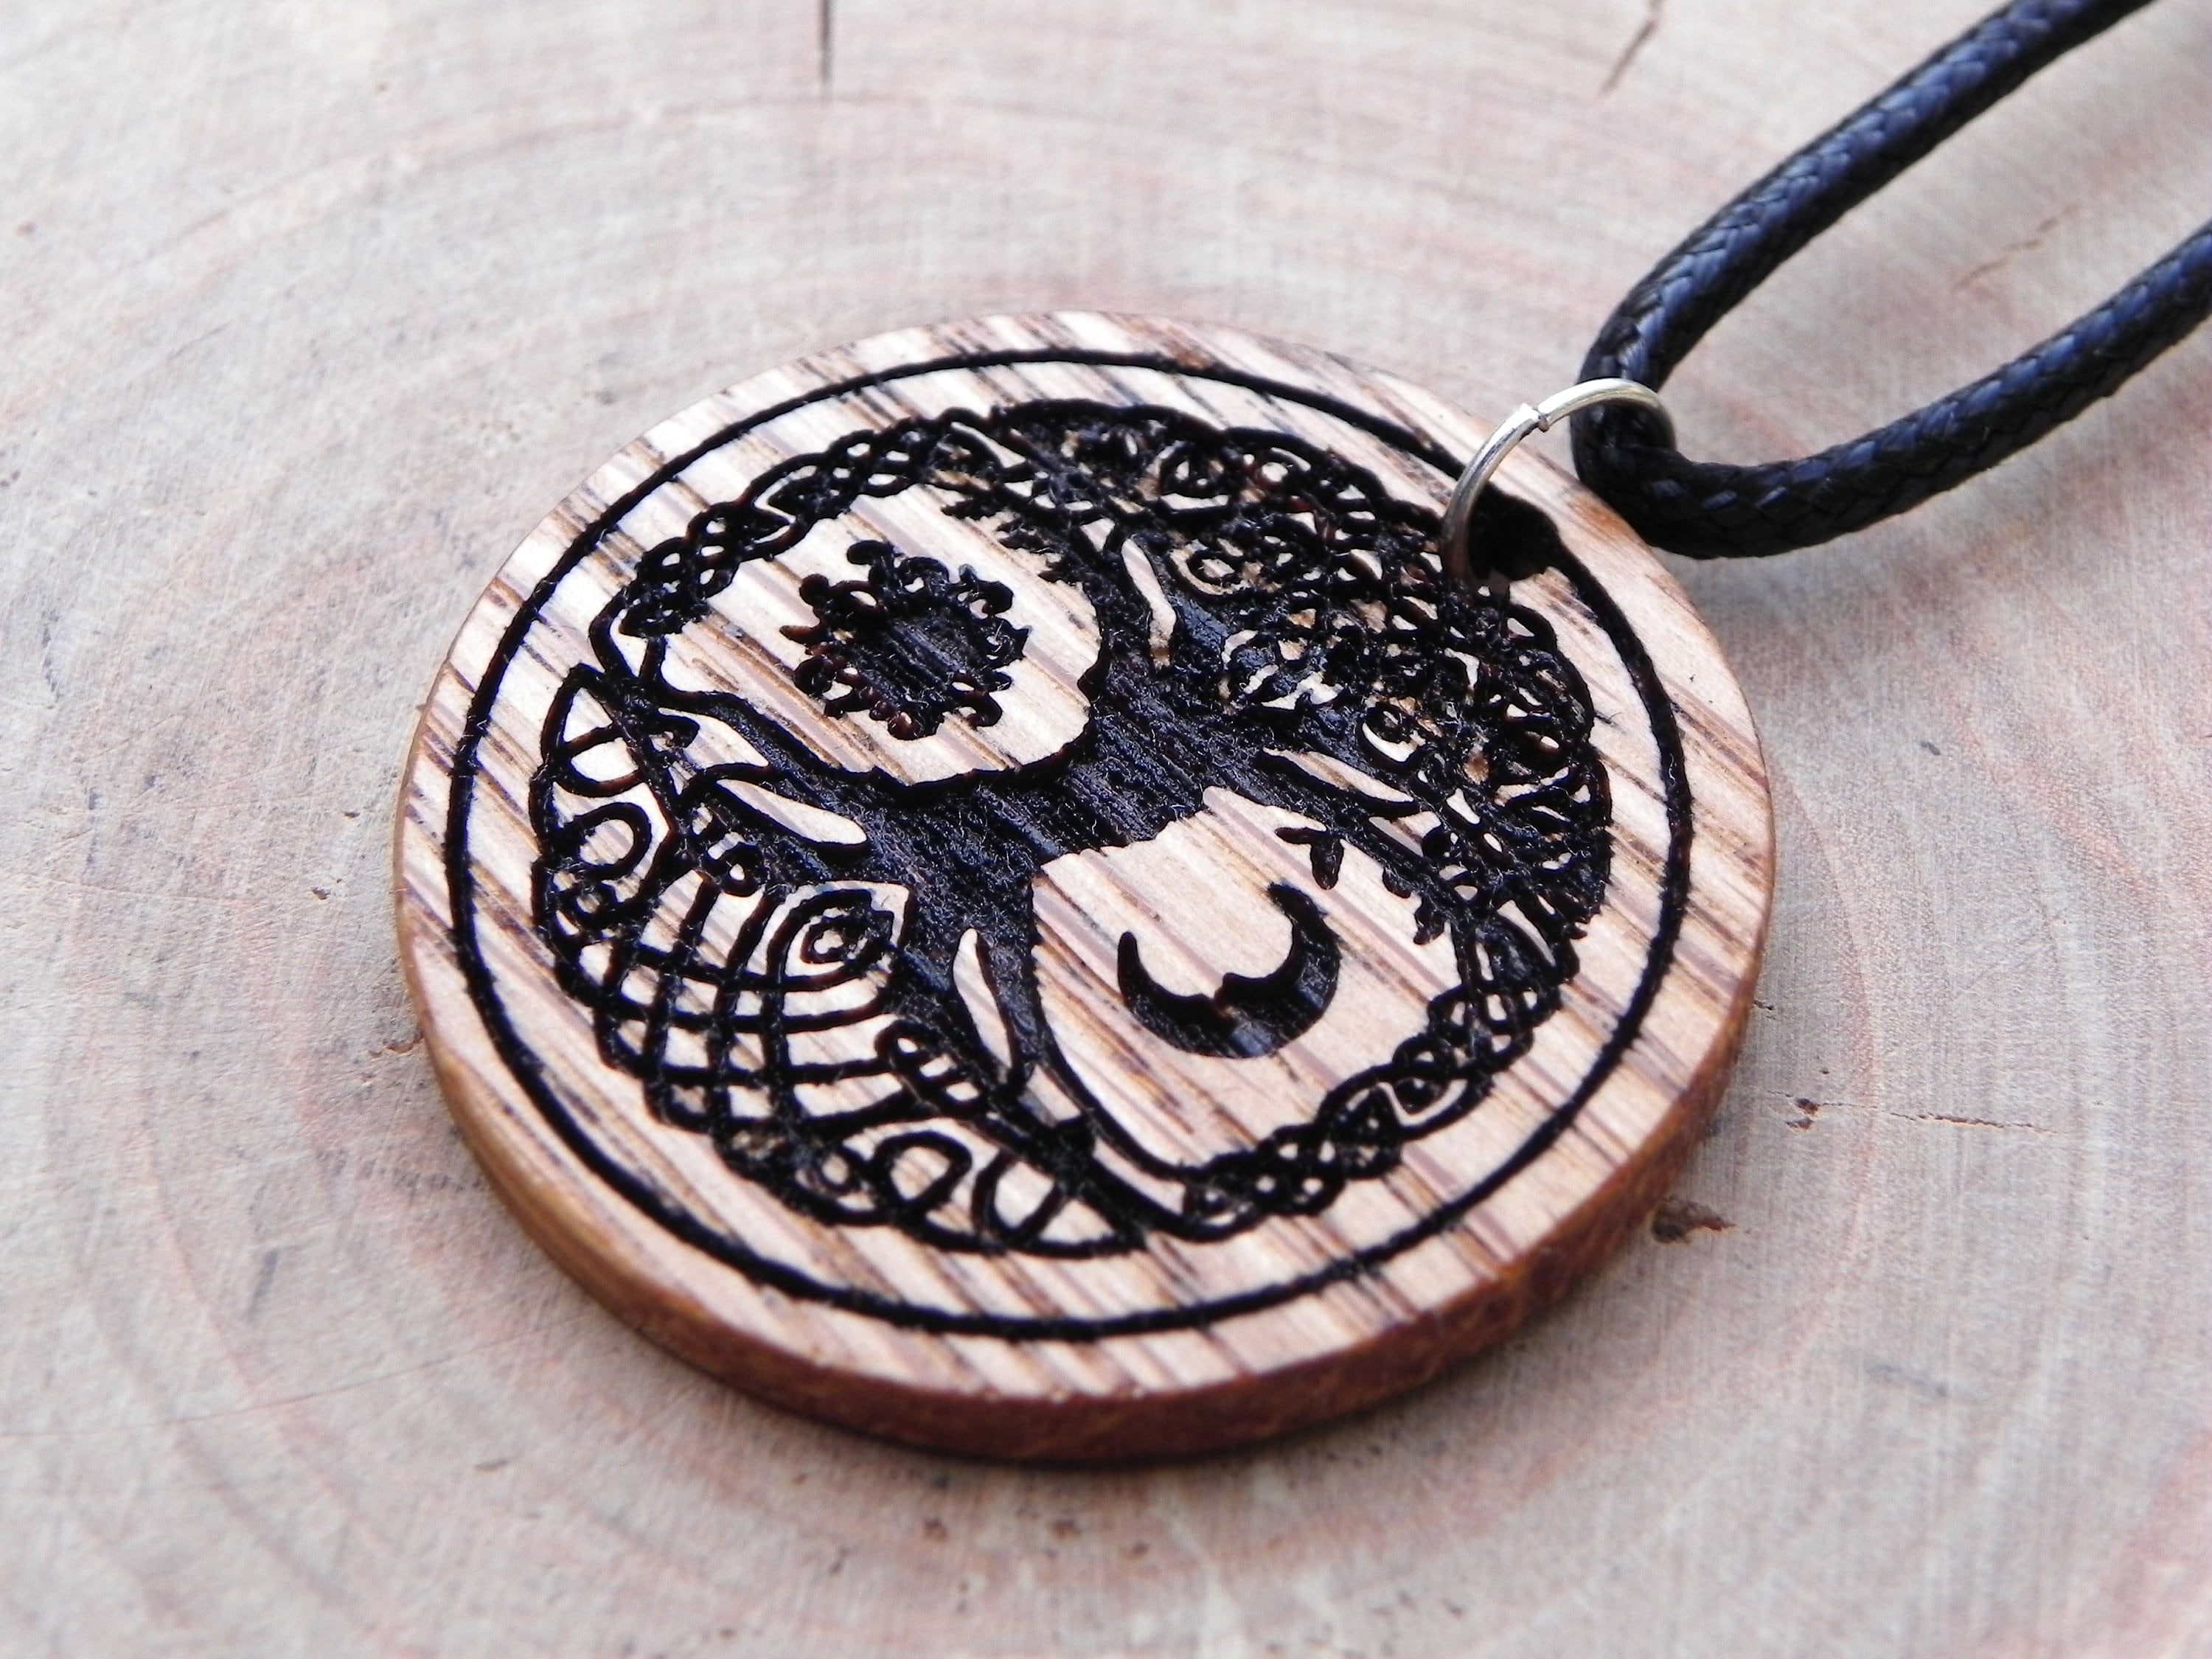 clay ornate polymer moon crescent sun jewellery necklace youtube diy watch jewelry tutorial pendant